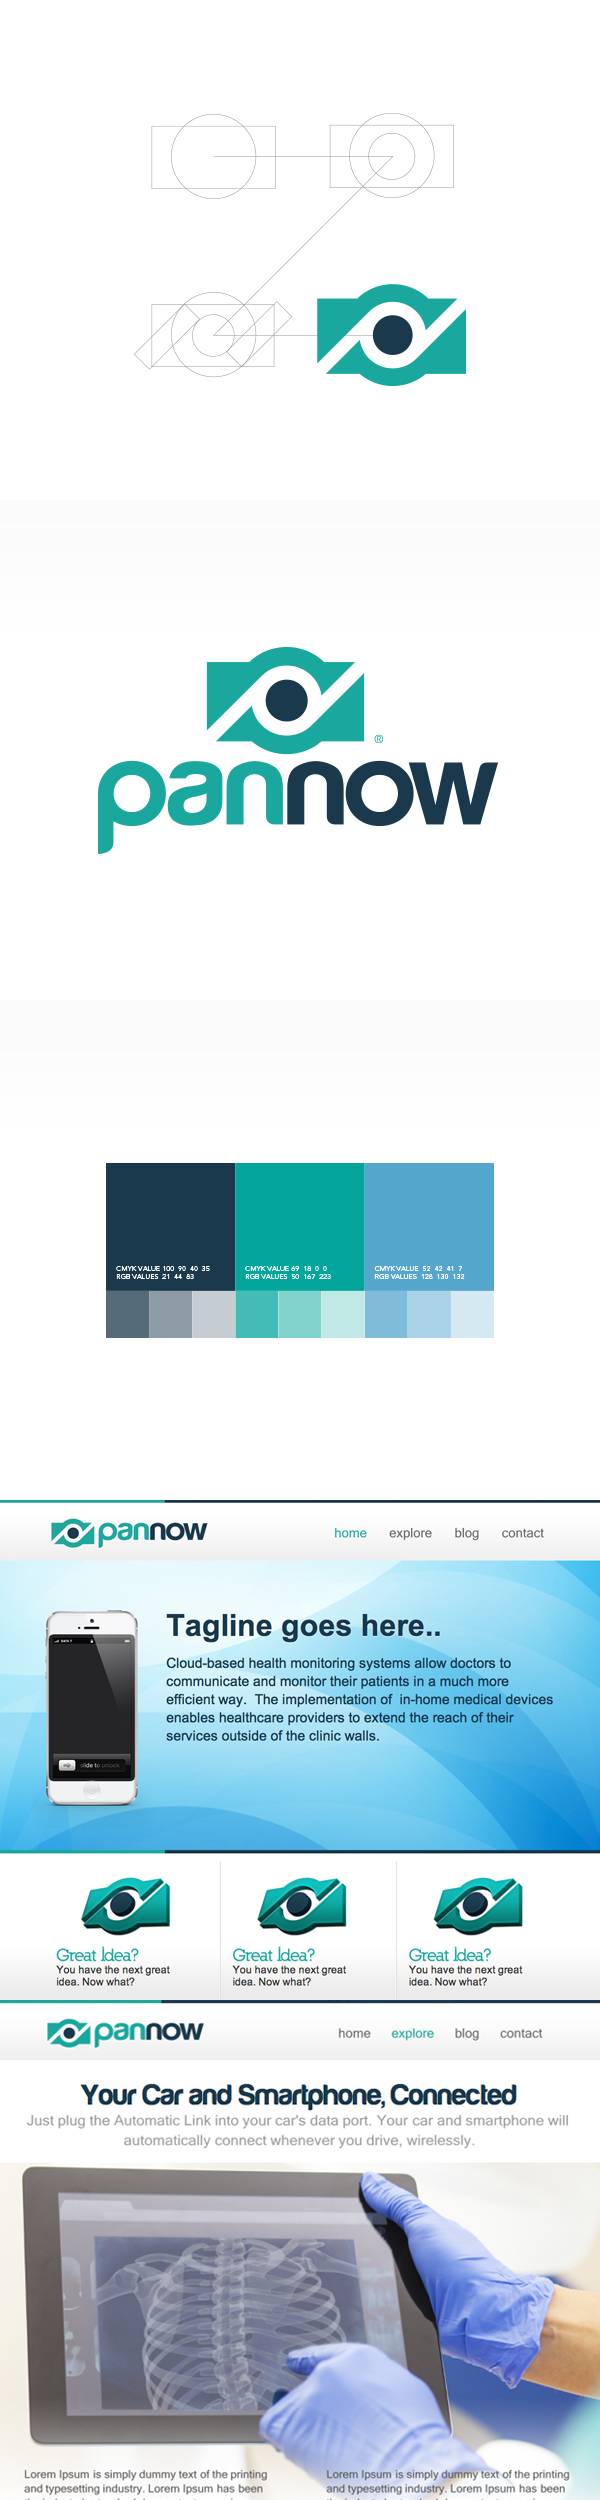 layout_post_pannow_logo